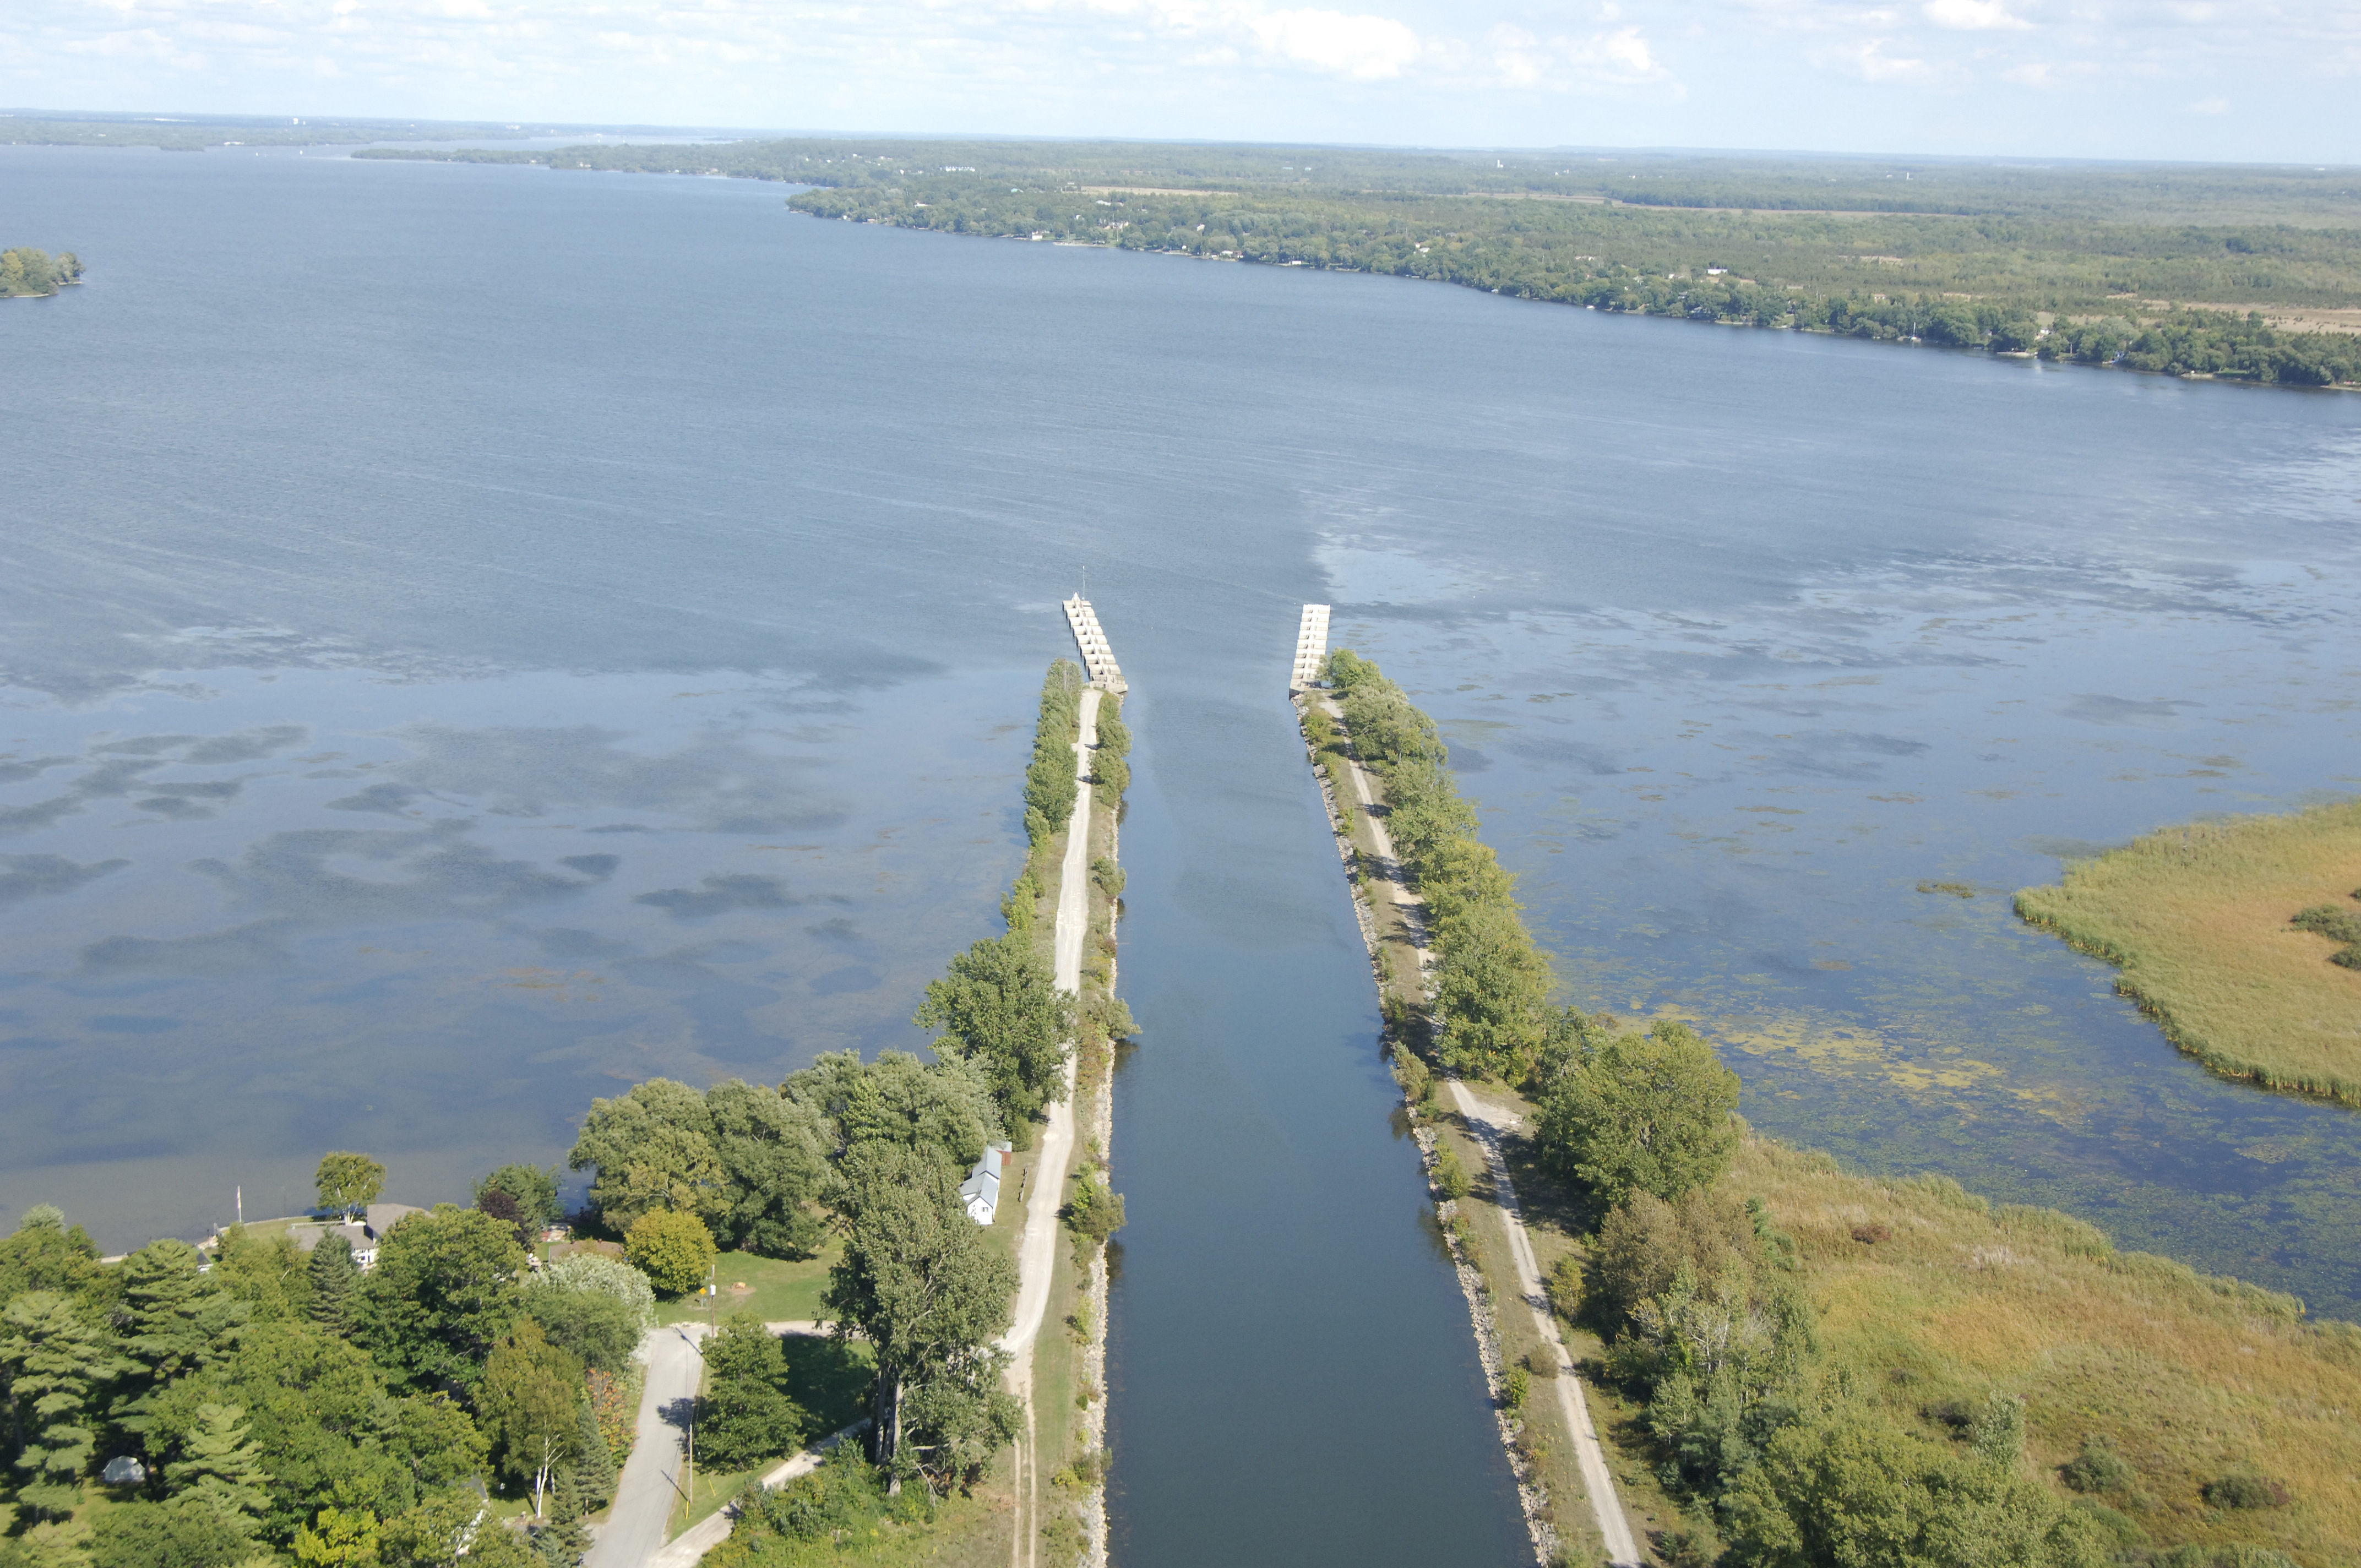 QUINTE CANAL